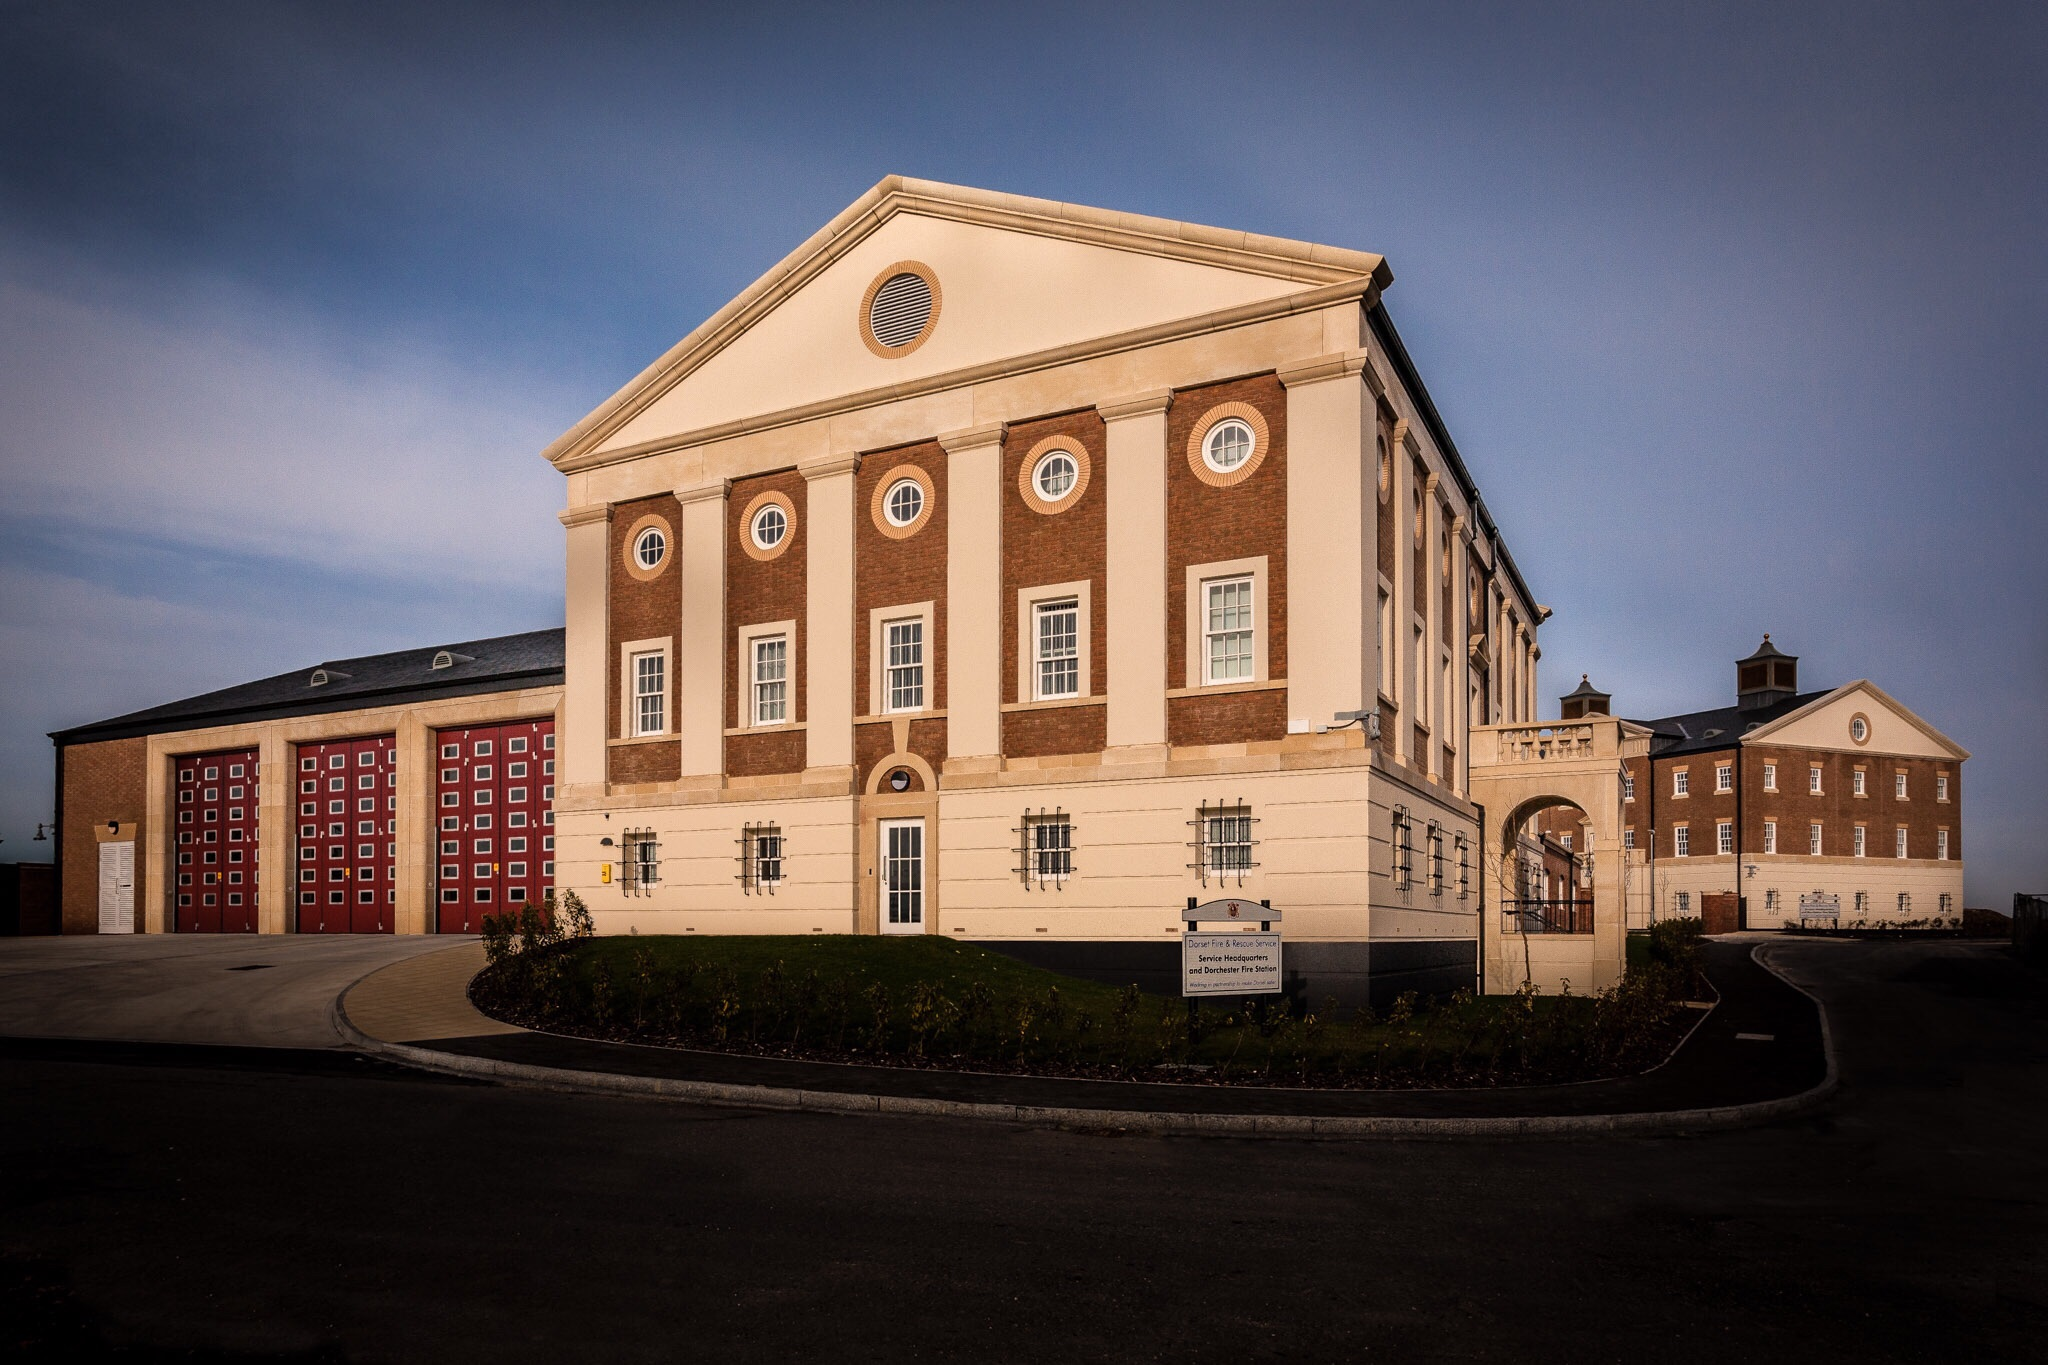 DFRS HQ and Dorchester Fire Station photographed for the builder Morgan Sindall